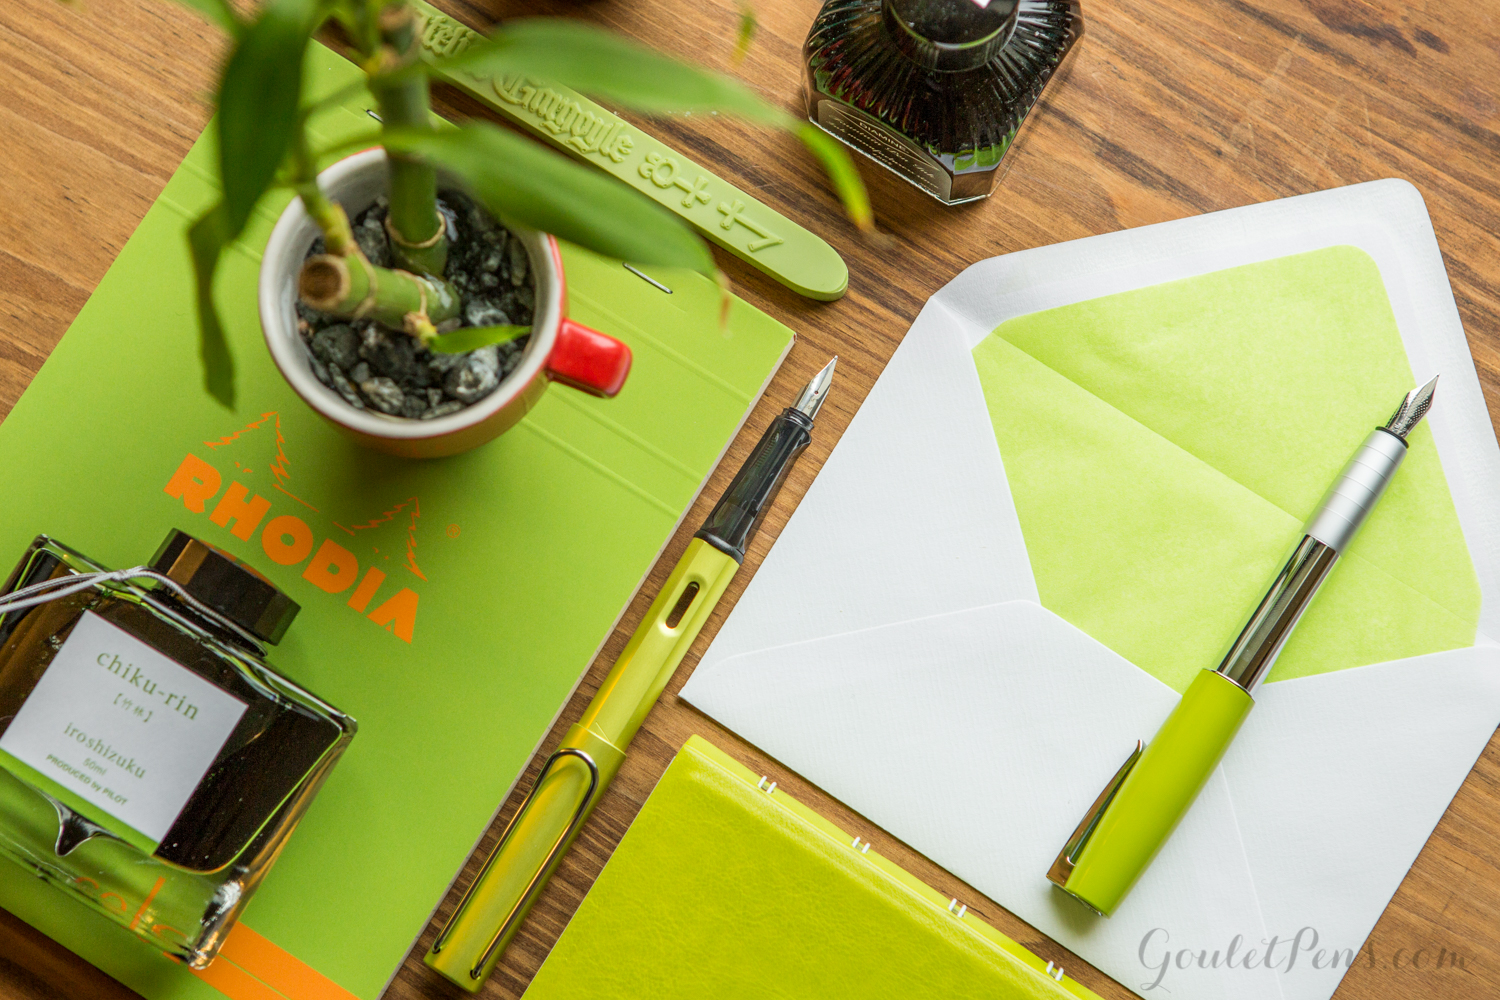 Faber-Castell Loom Piano Lime in a flat lay arrangement of fountain pens, notebooks, and ink in an array of light bamboo greens and lime hues.